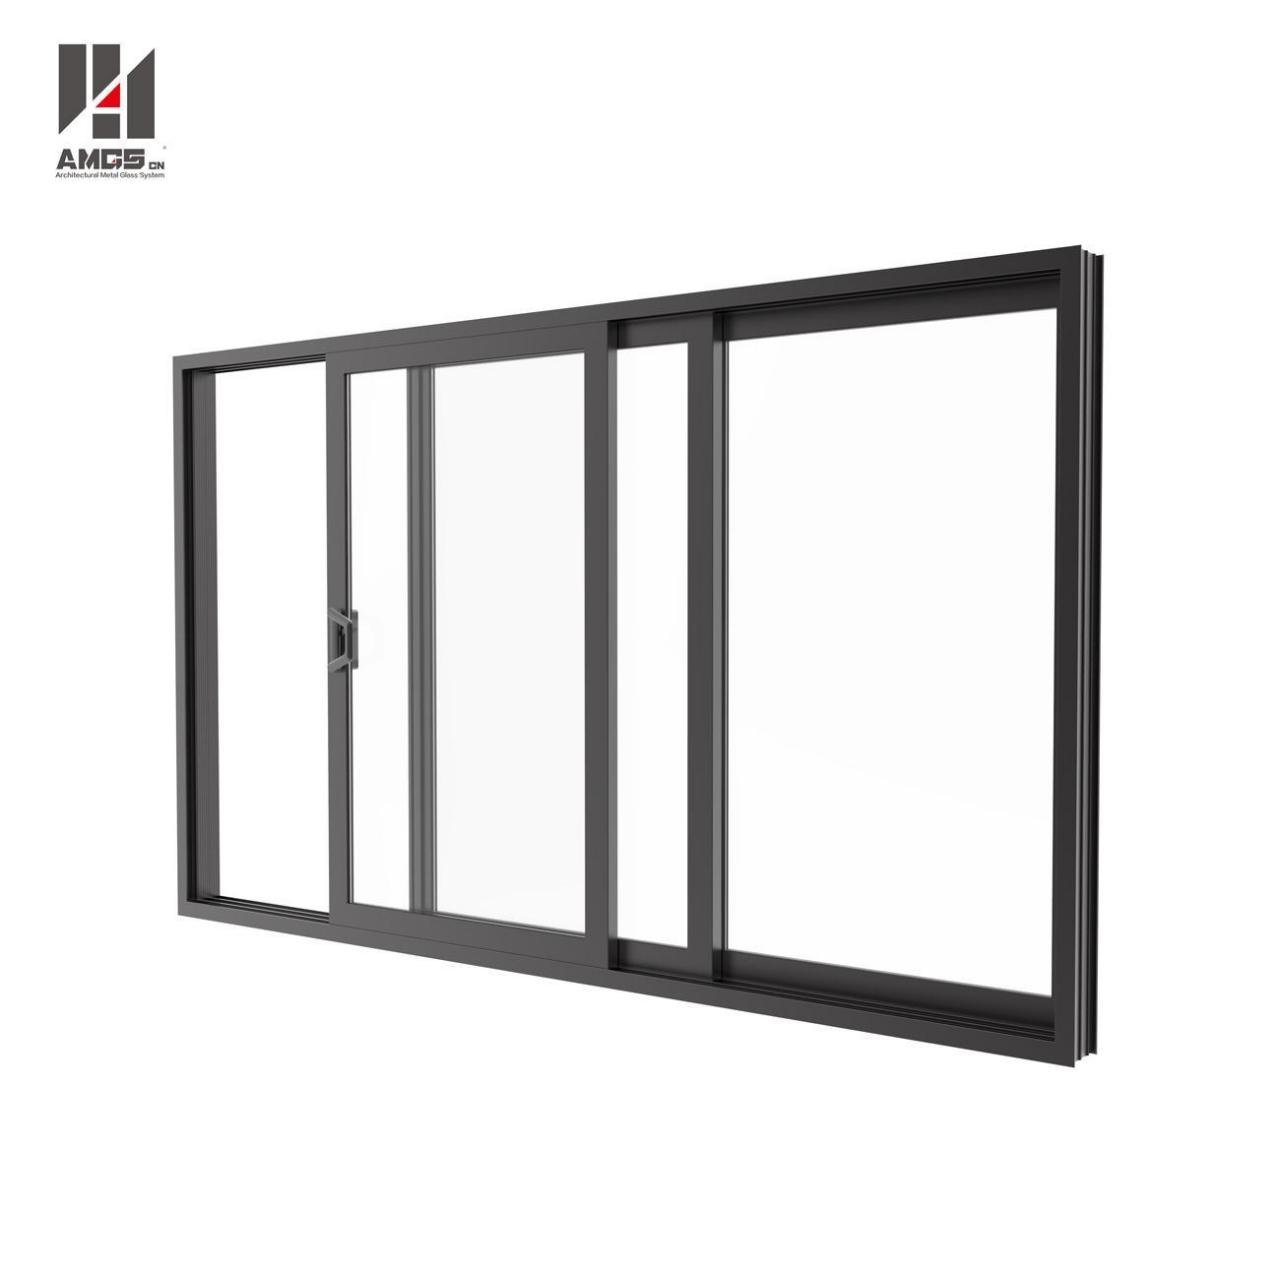 Aluminium Profile Sliding Glass Doors For Double Glass